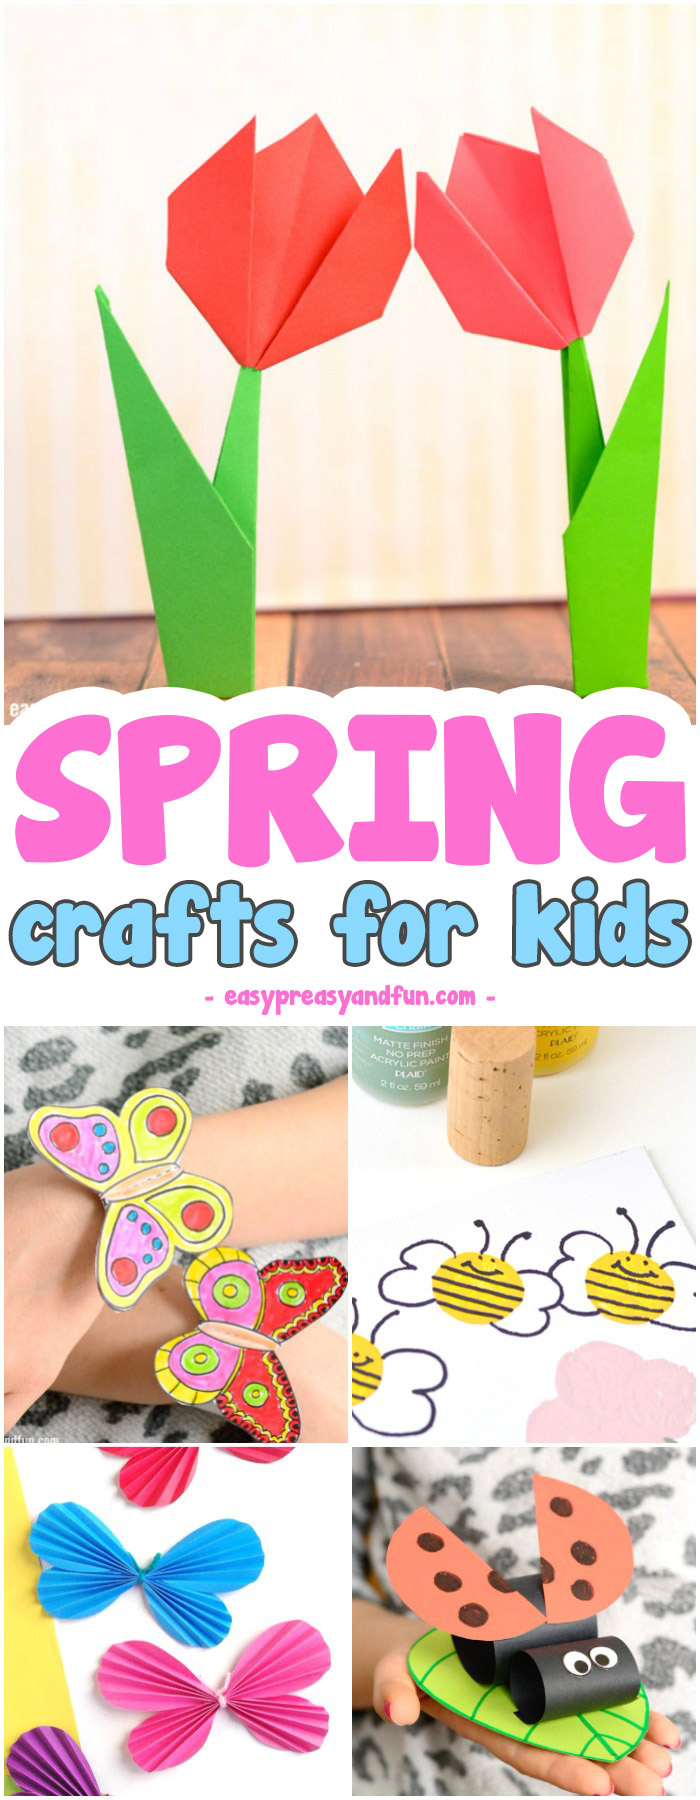 Spring crafts for kids art and craft project ideas for for Fun crafts for all ages